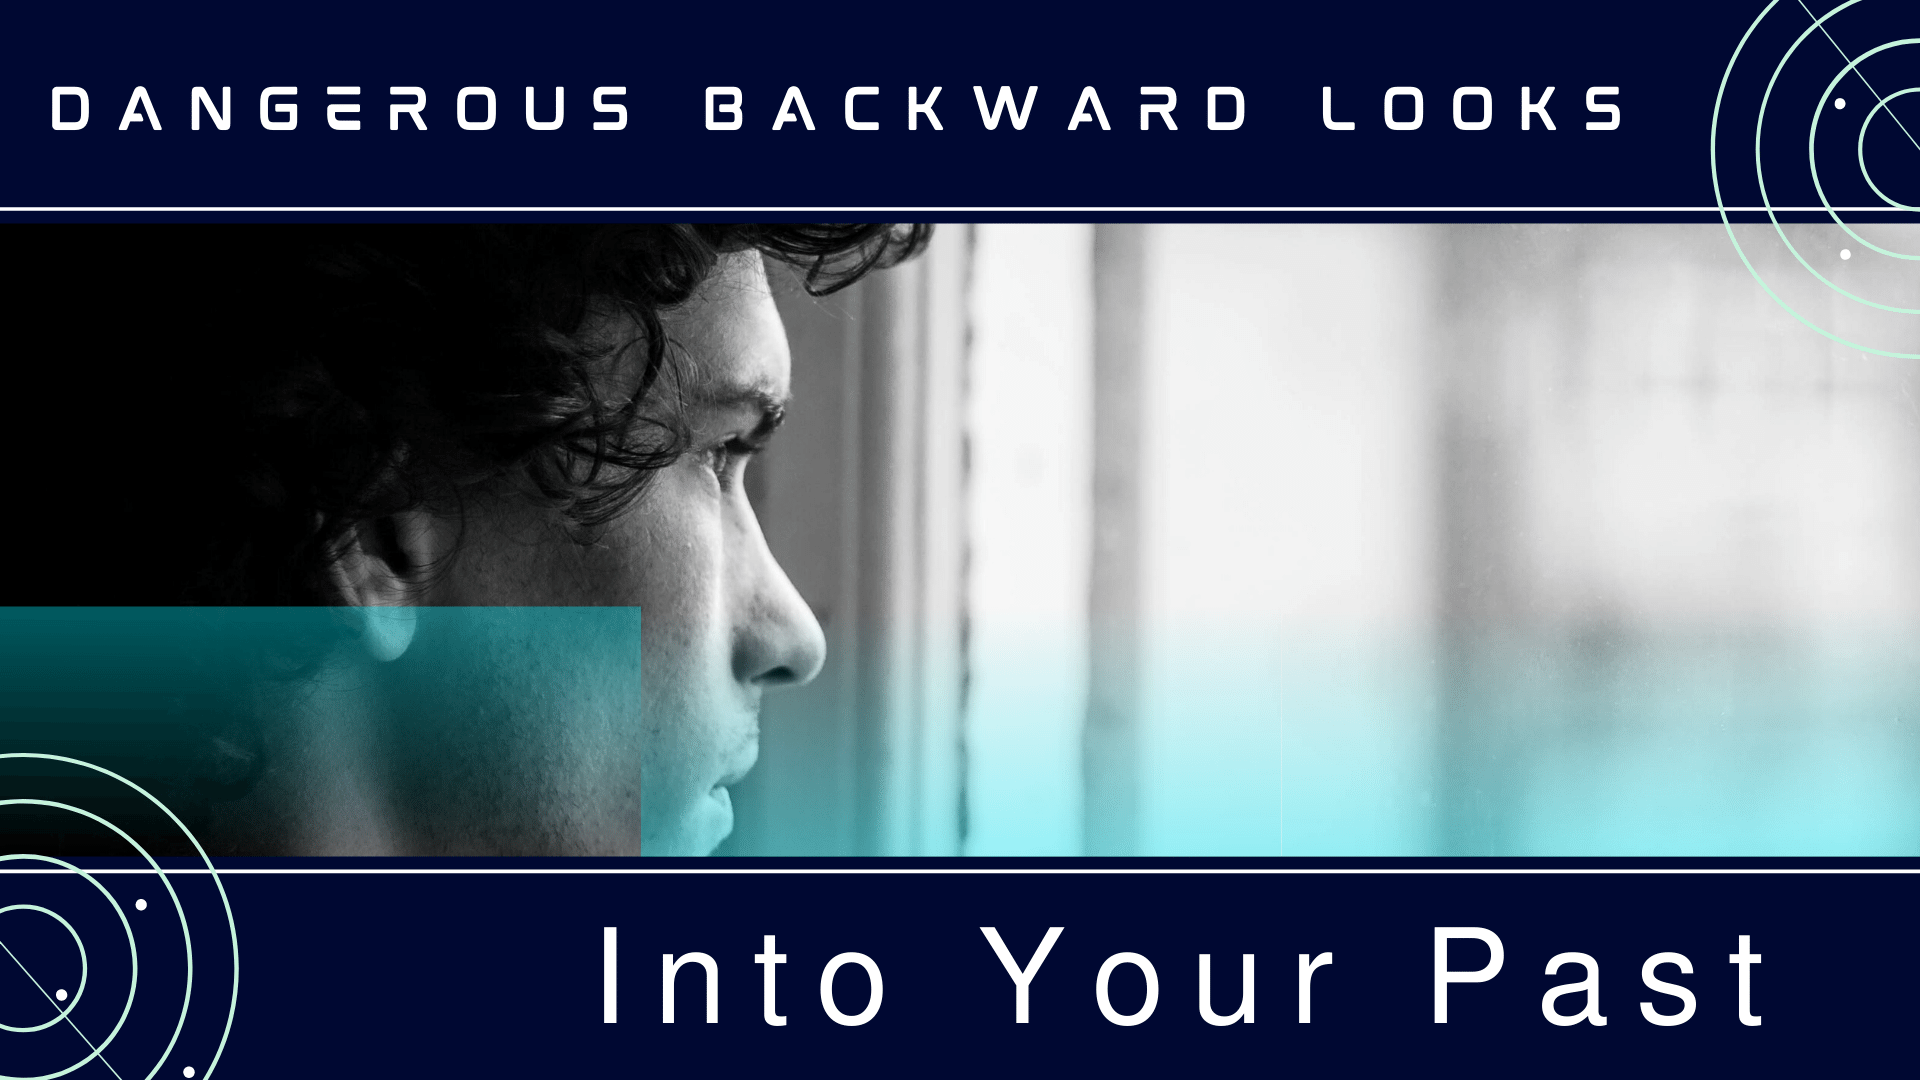 Dangerous Backward Looks Into Your Past